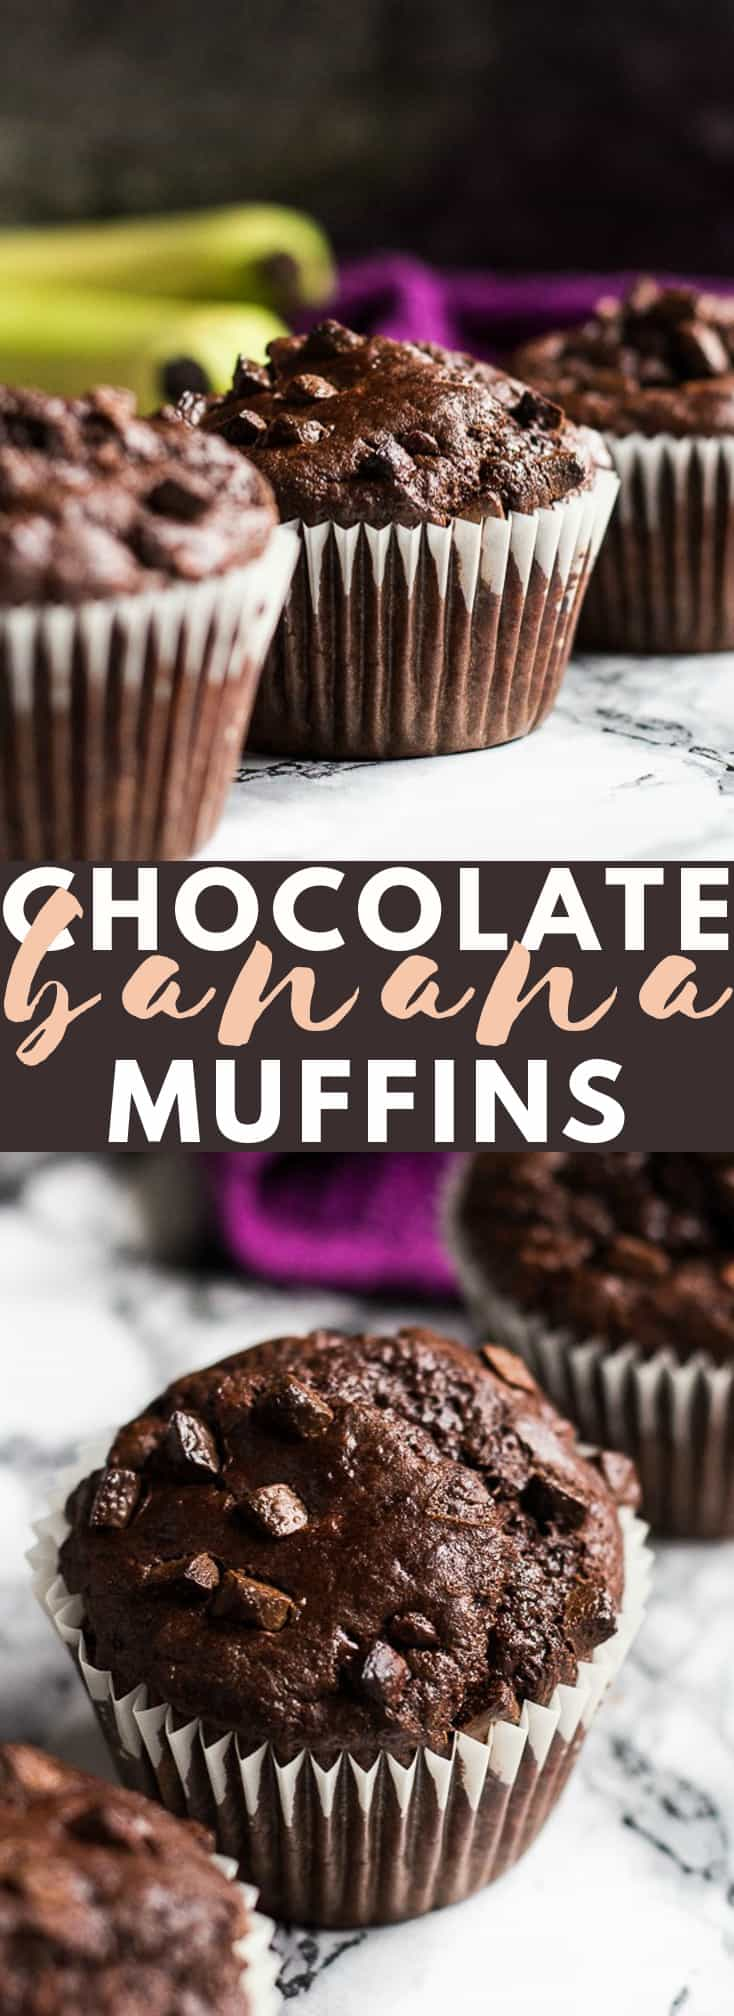 Chocolate Banana Muffins - Deliciously soft and moist chocolate muffins that are full of banana flavour, and studded with chocolate chips! #chocolate #banana #muffins #muffinrecipes #breakfastrecipes